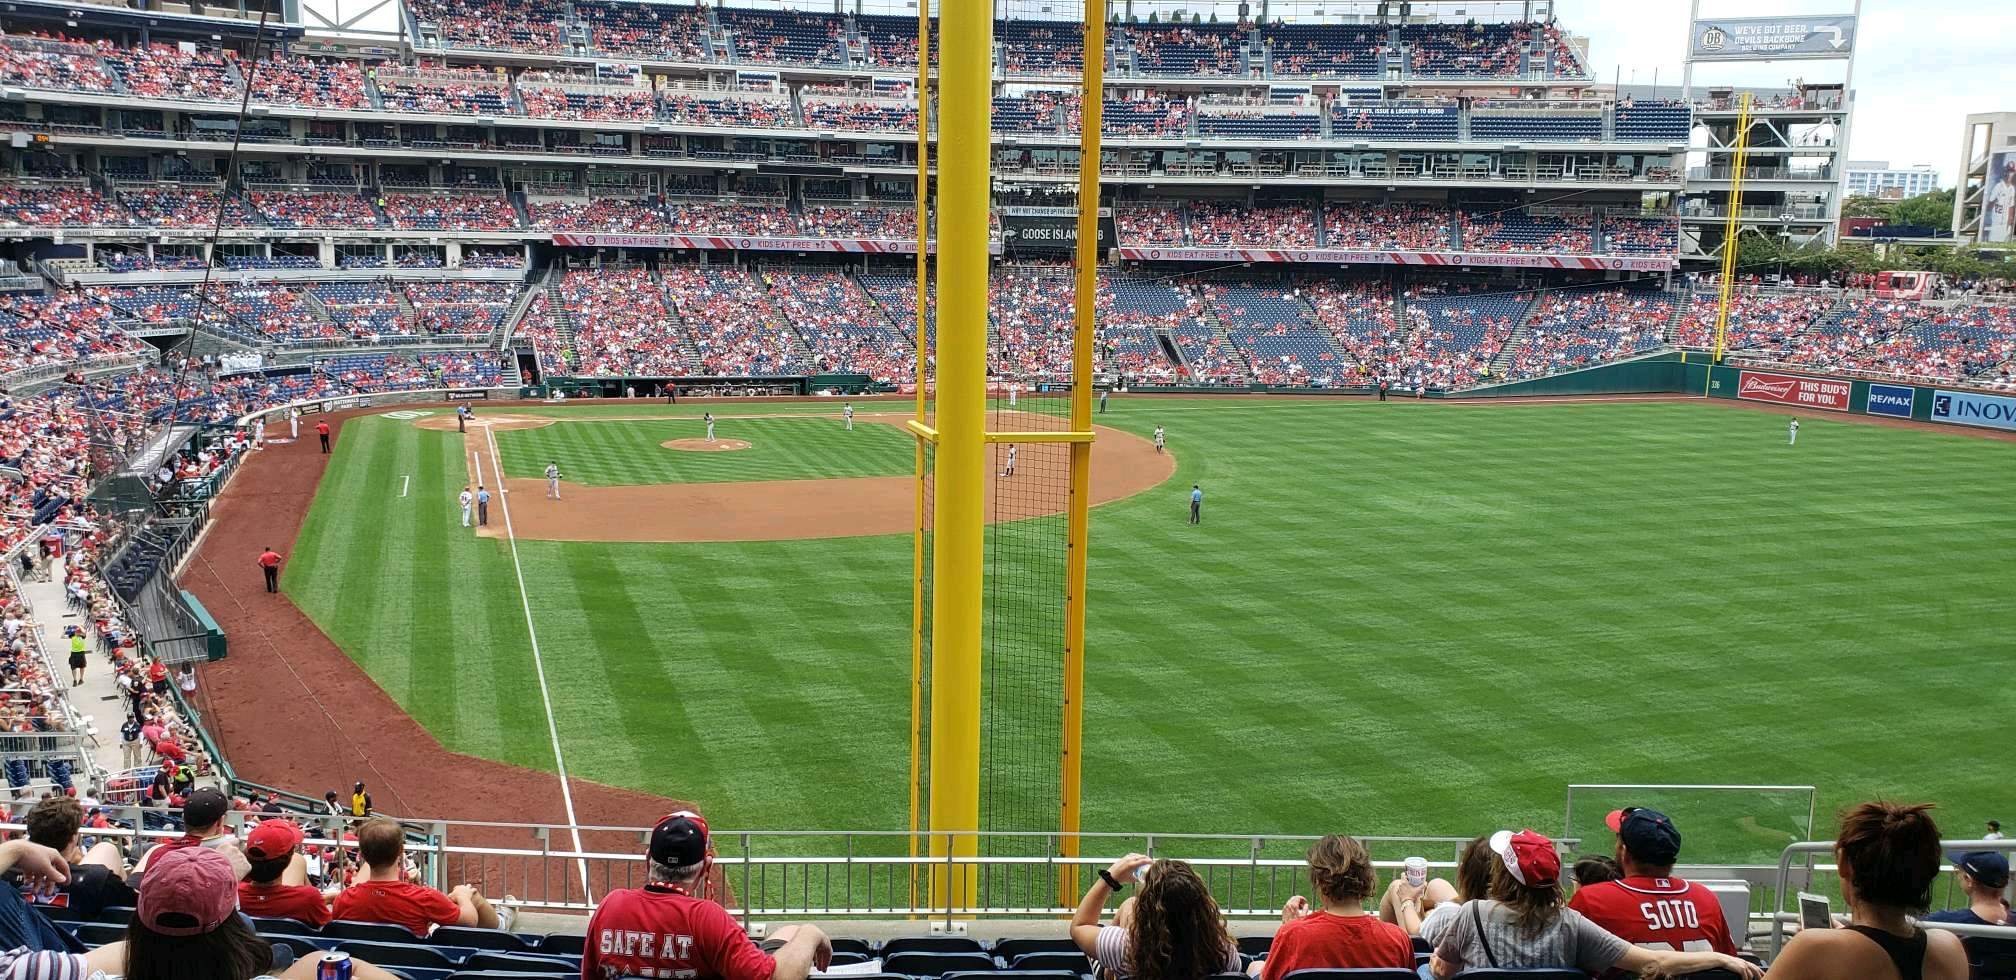 Nationals Park Secção 235 Fila j Lugar 7